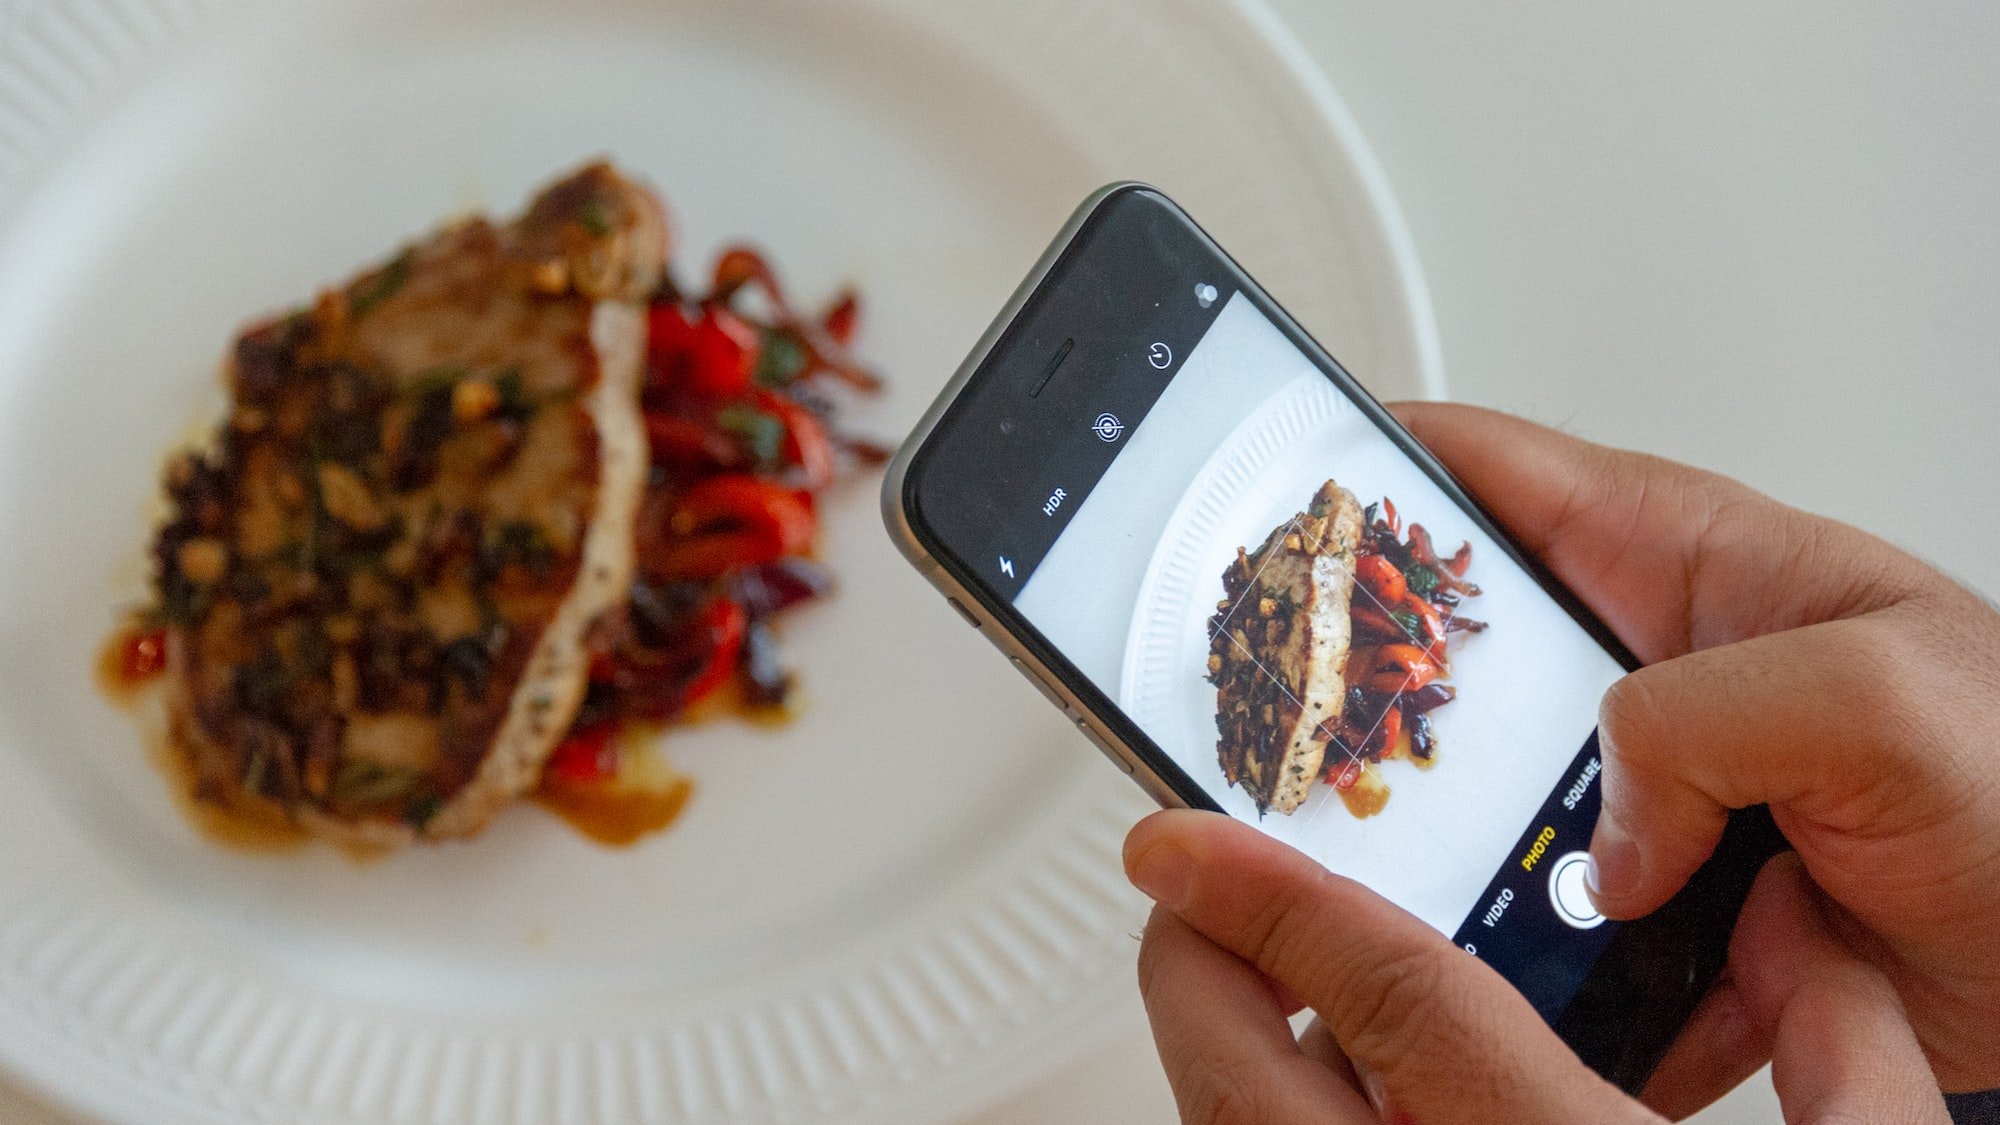 A friend of mine is leaving his job to work on a cooking app –something I think is absolutely insane.  All the power to him as long as I can benefit from the test cooking though.  Pork chops with sweet and sour peppers care of Gordon Ramsay if anyone is interested –https://www.youtube.com/watch?v=Ke_xYIhYPTw.